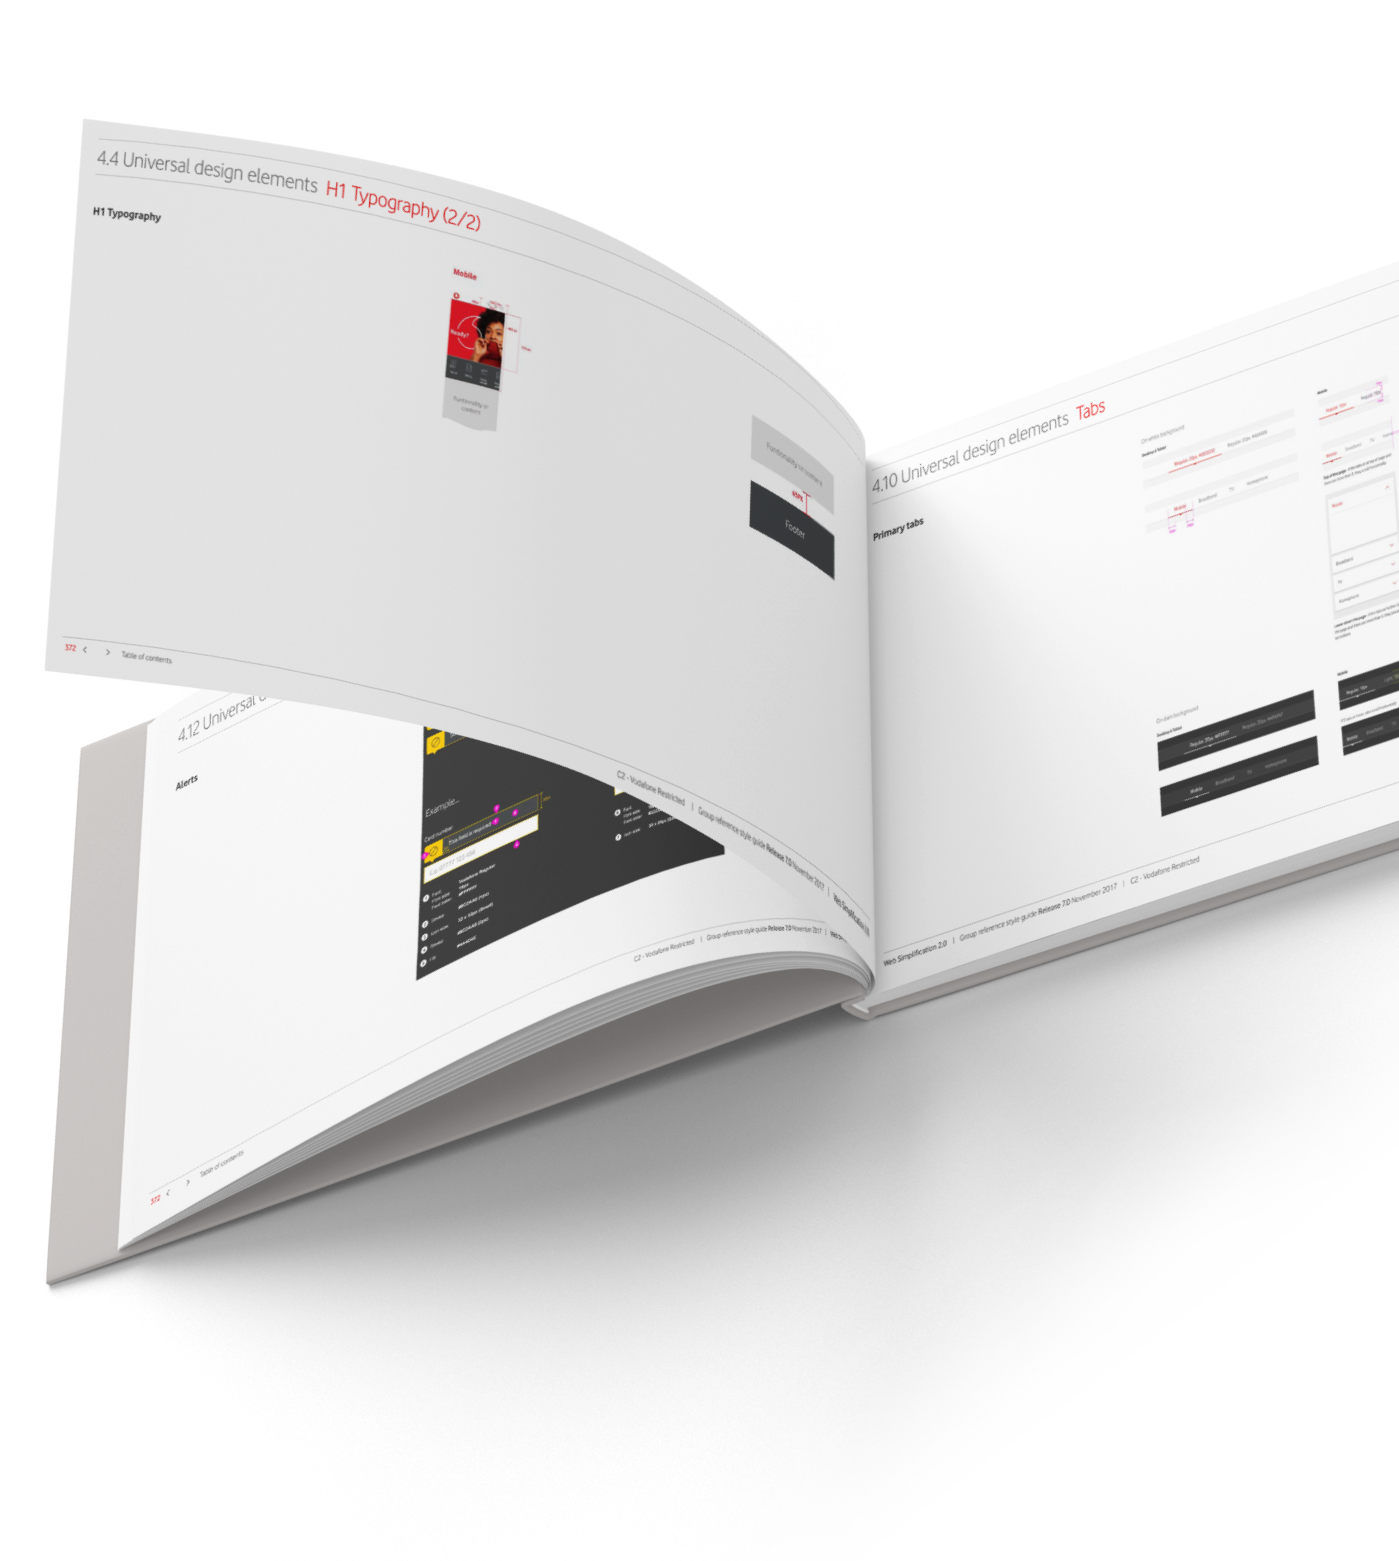 Vod Low UIkit 01 Horizontal Book Mockup 5